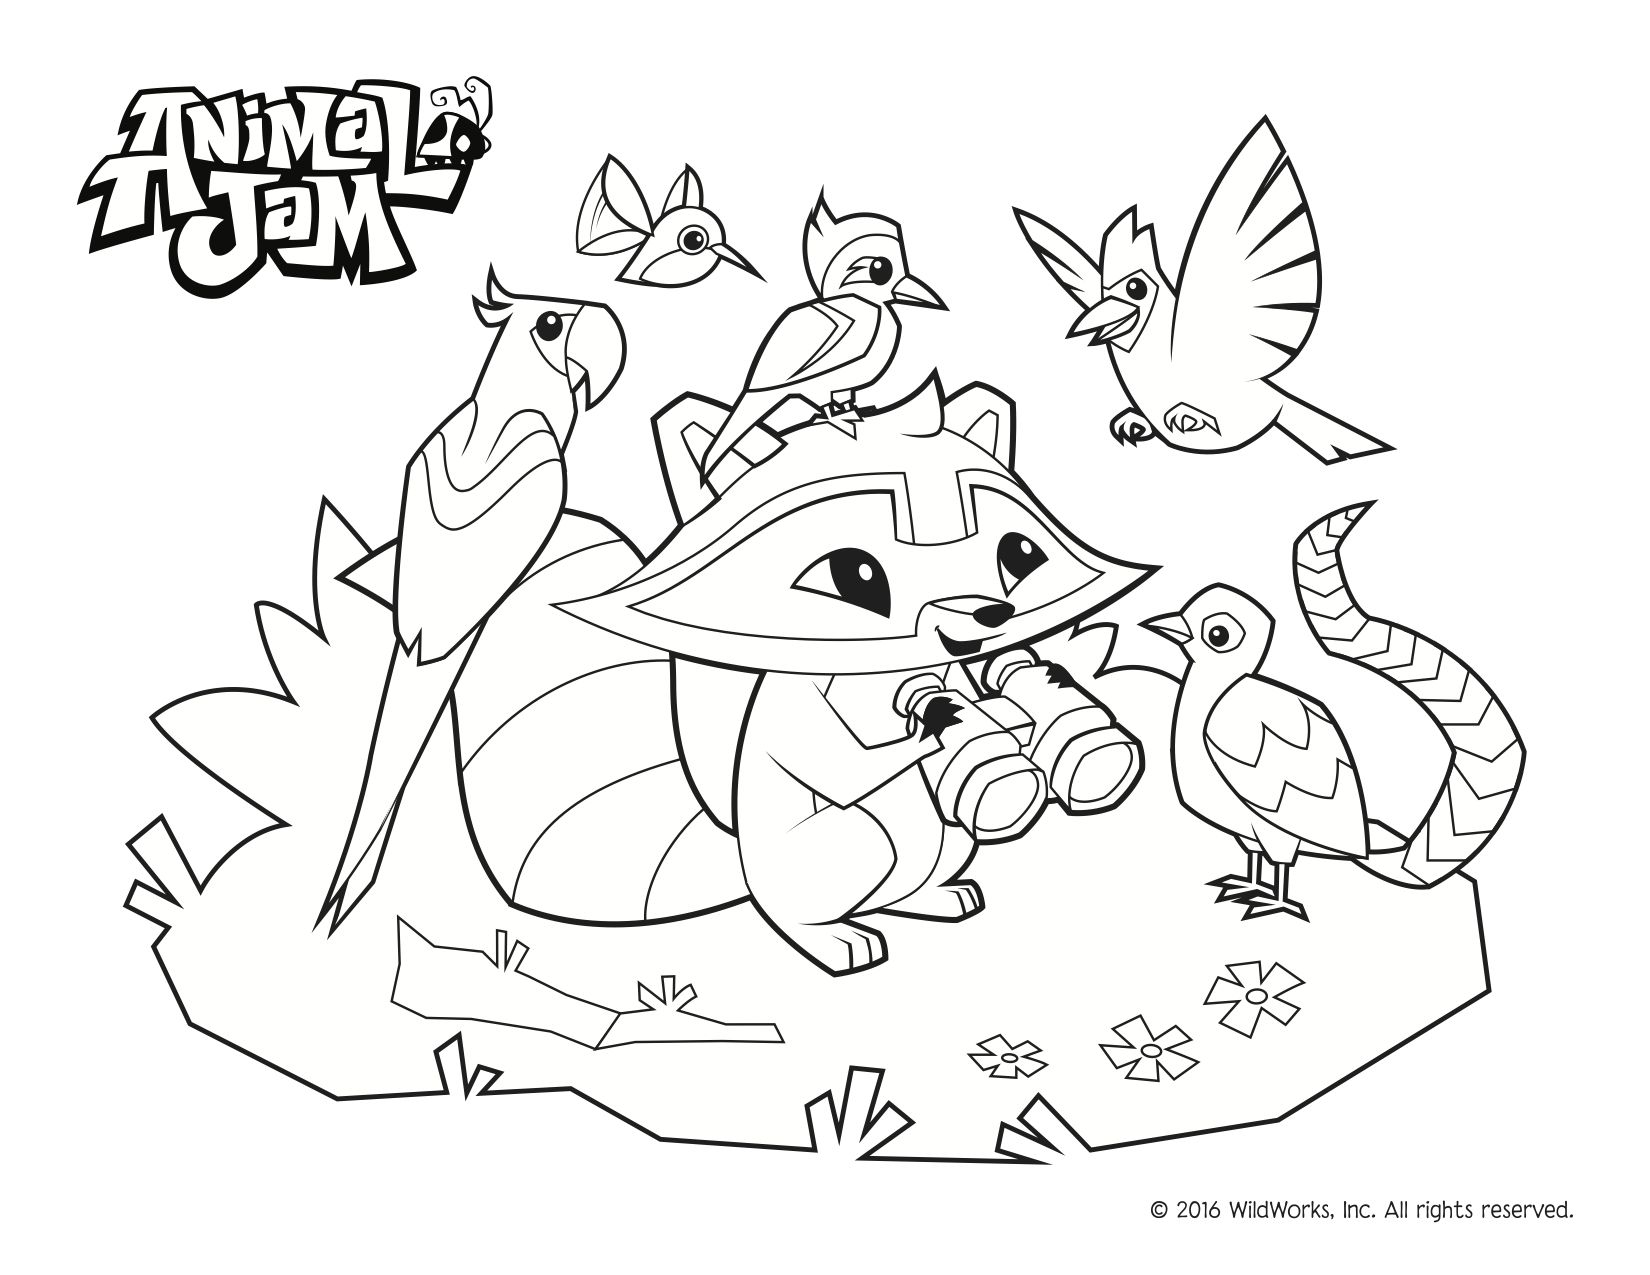 1650x1275 Animal Jam Coloring Pages! Celebrate Spring And The Environment